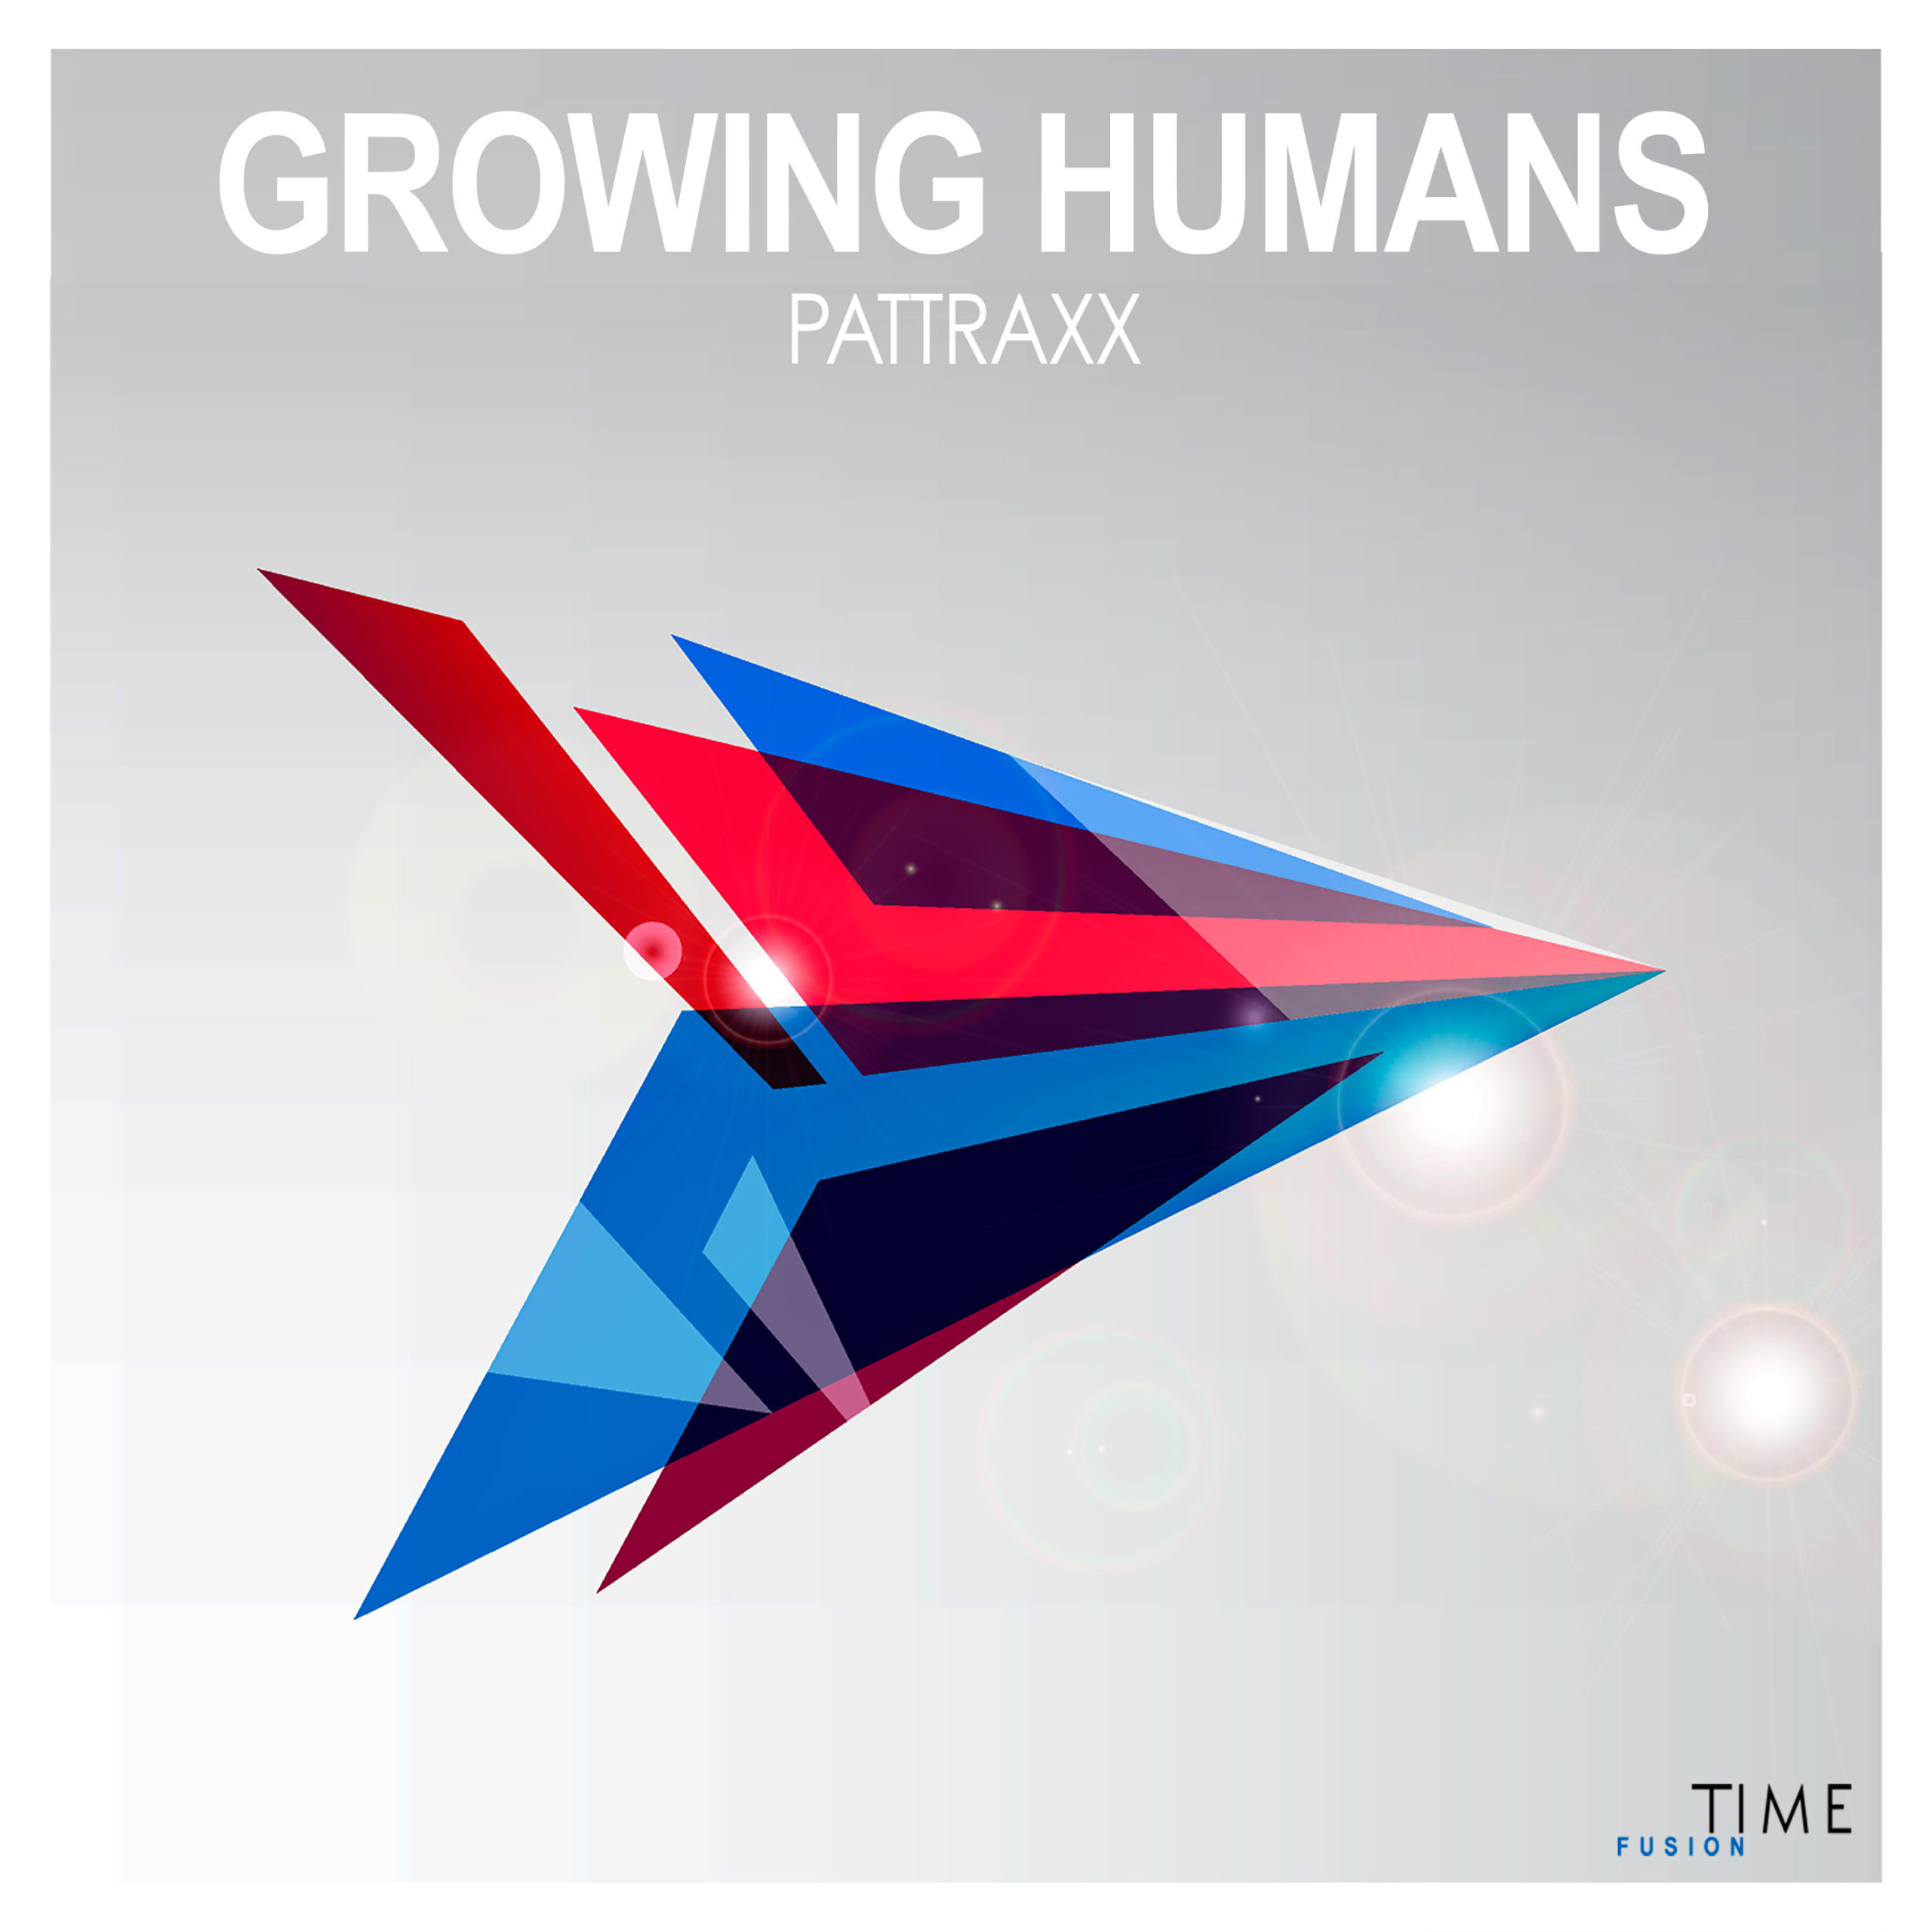 https://www.ultimate-house-records.com/wp-content/uploads/2020/10/tf138-Growing_Humans-Cover-3000px-web-scaled.jpg